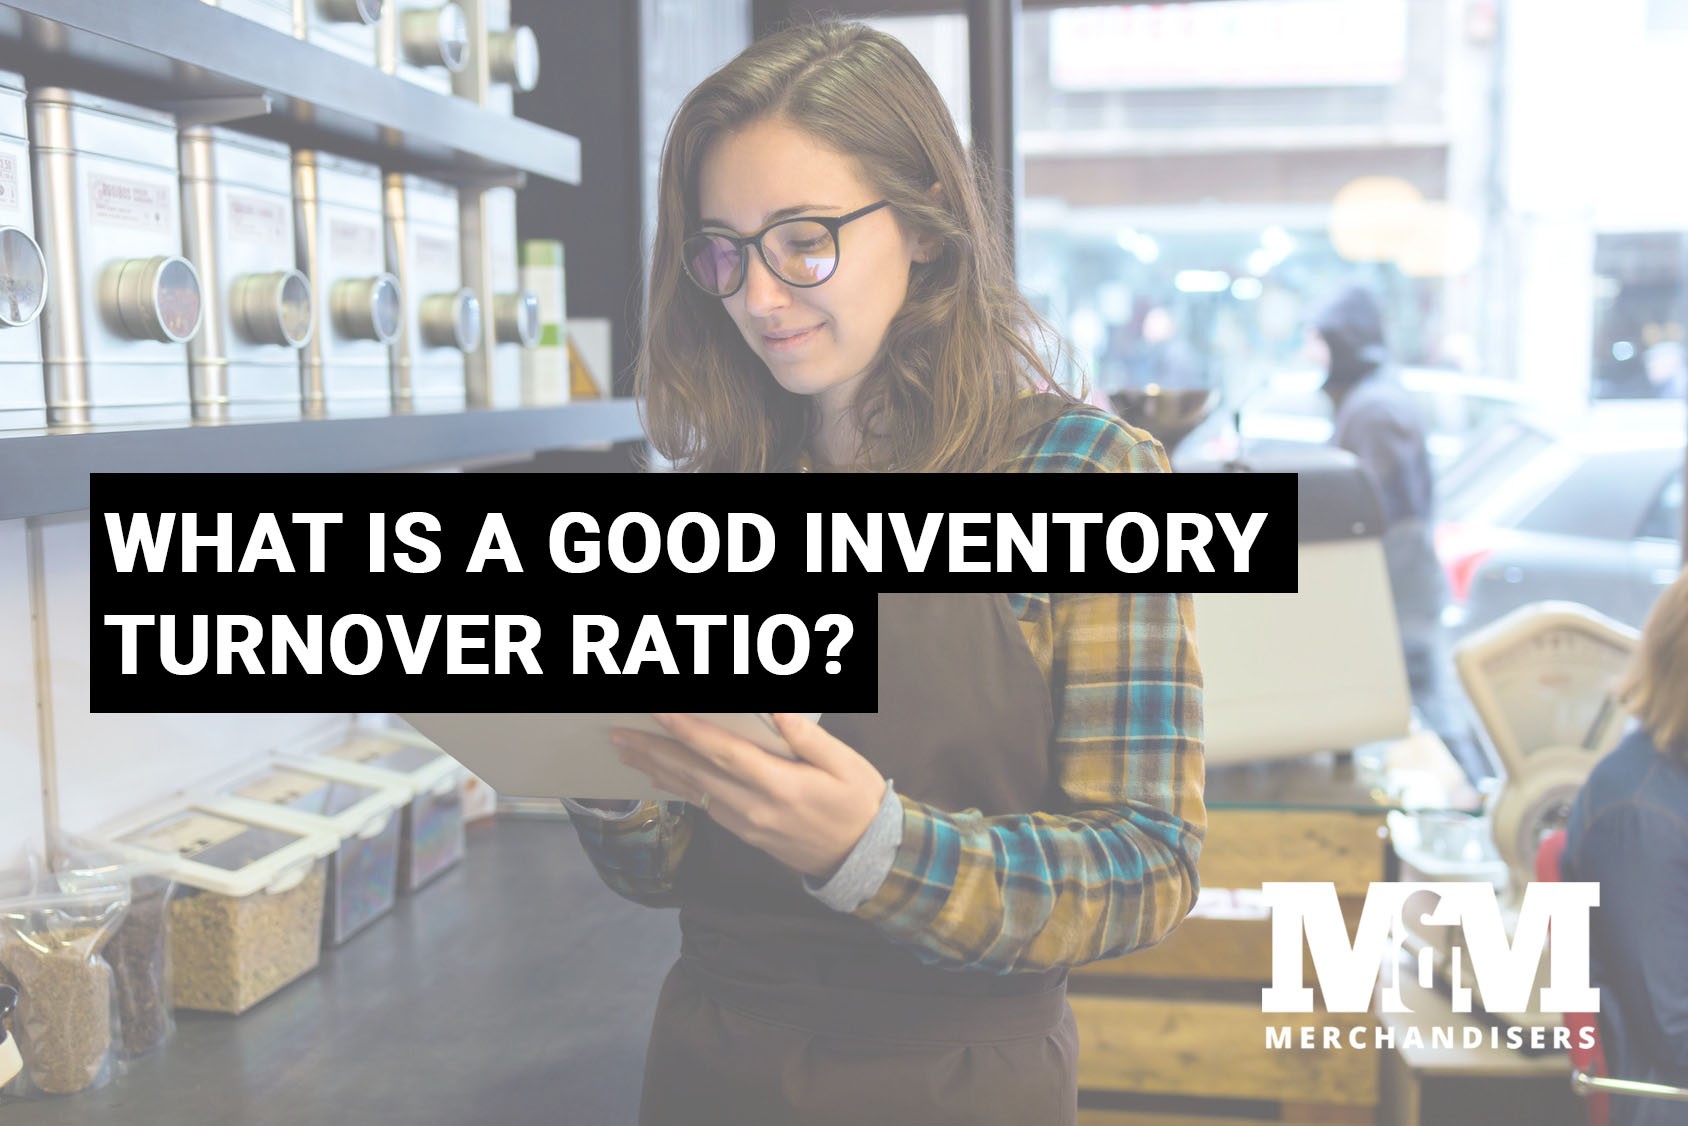 What Is a Good Inventory Turnover Ratio?